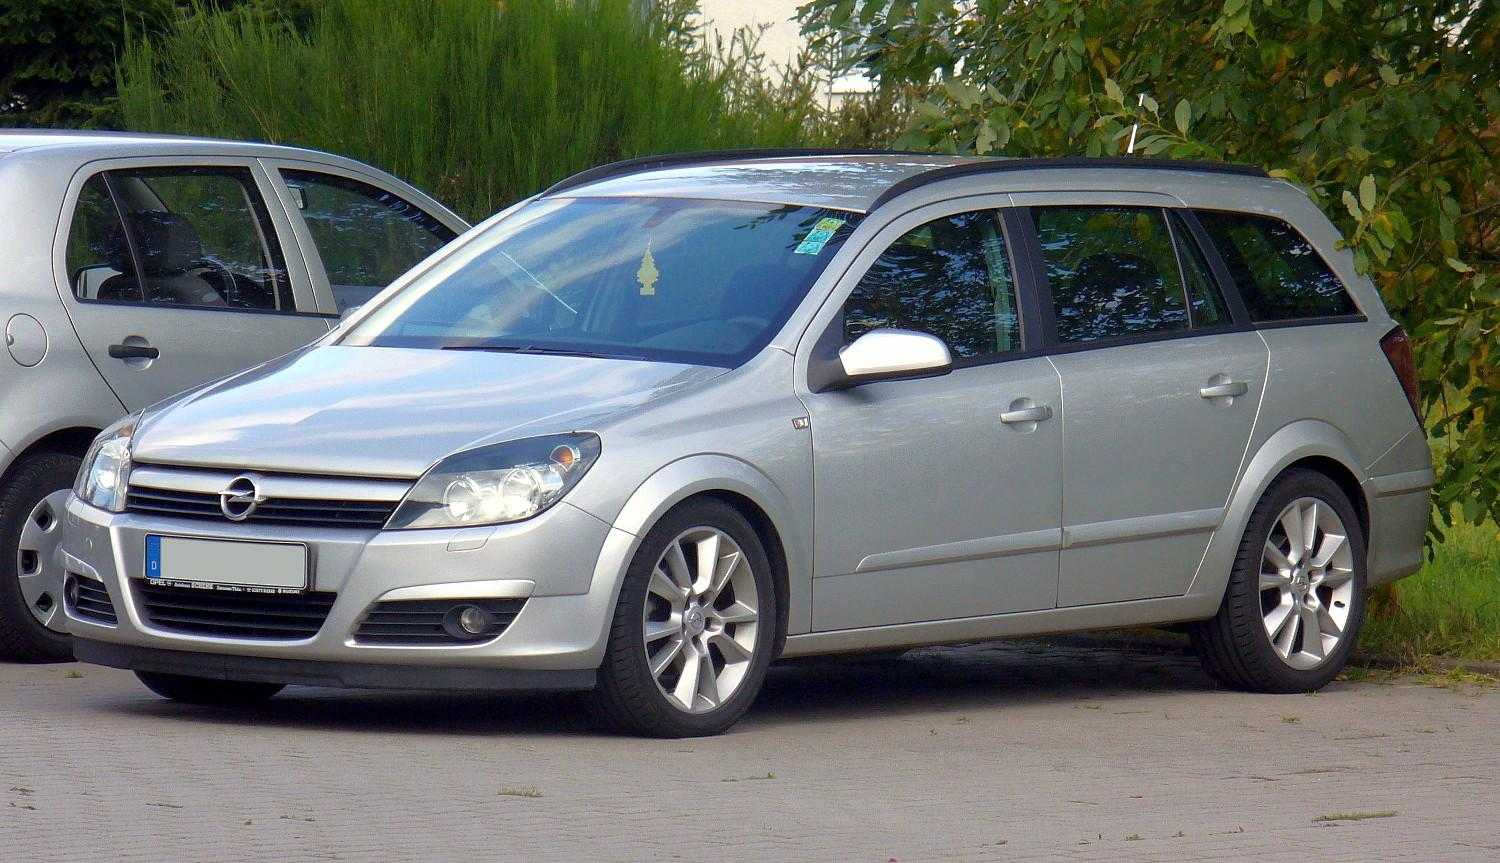 2008 opel astra h caravan pictures information and specs auto. Black Bedroom Furniture Sets. Home Design Ideas